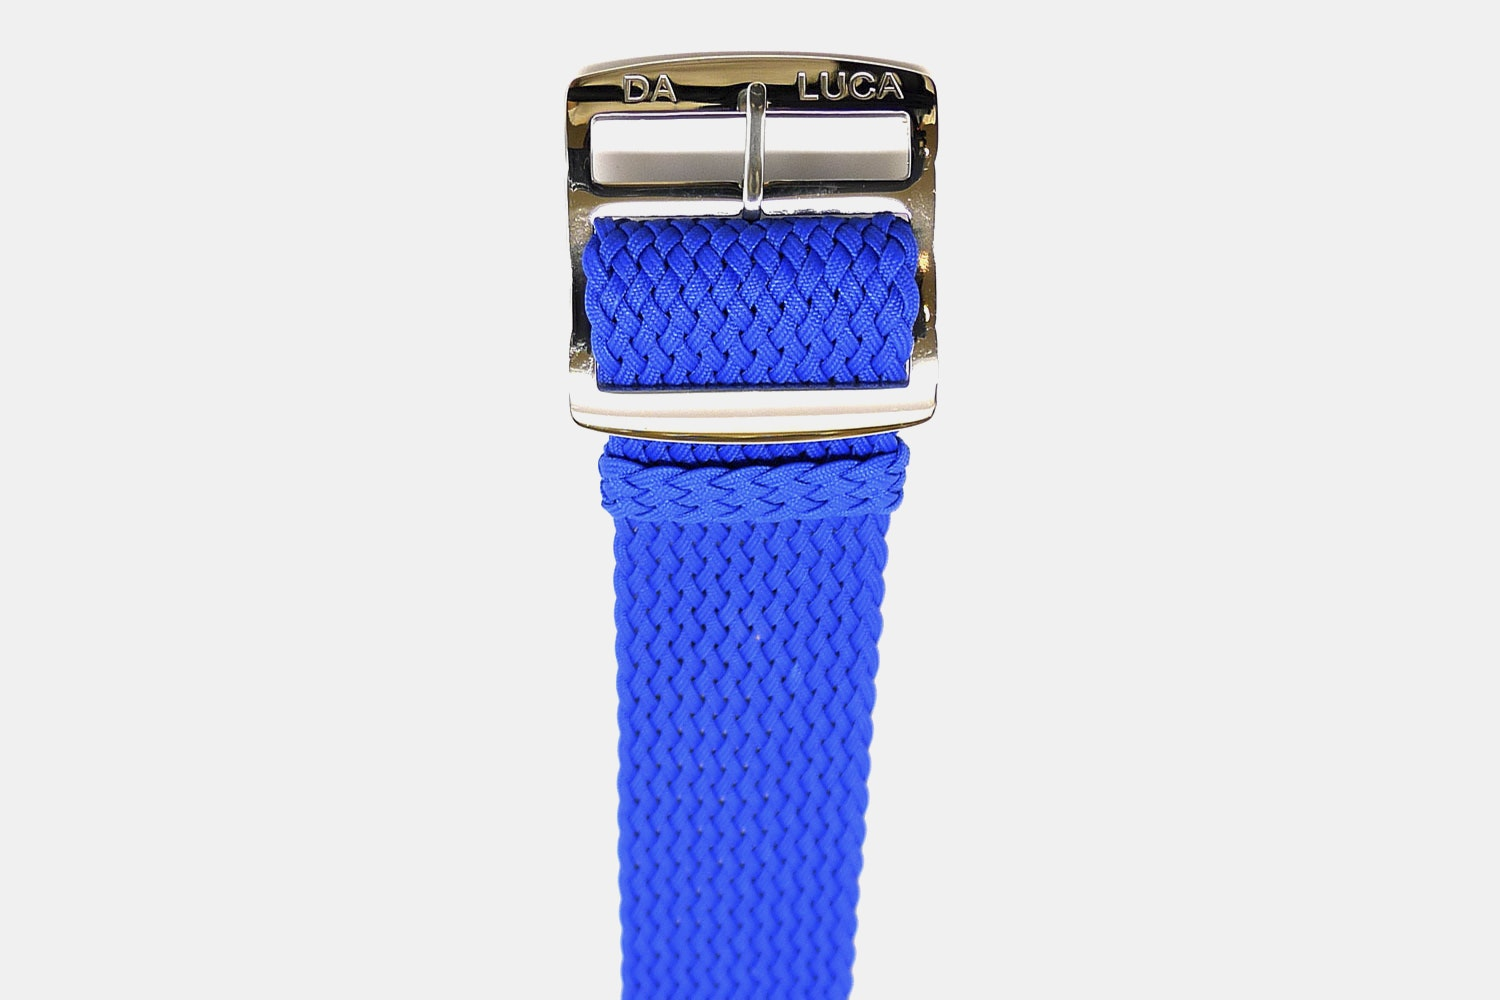 Da Luca Perlon Watch Straps (2-Pack)